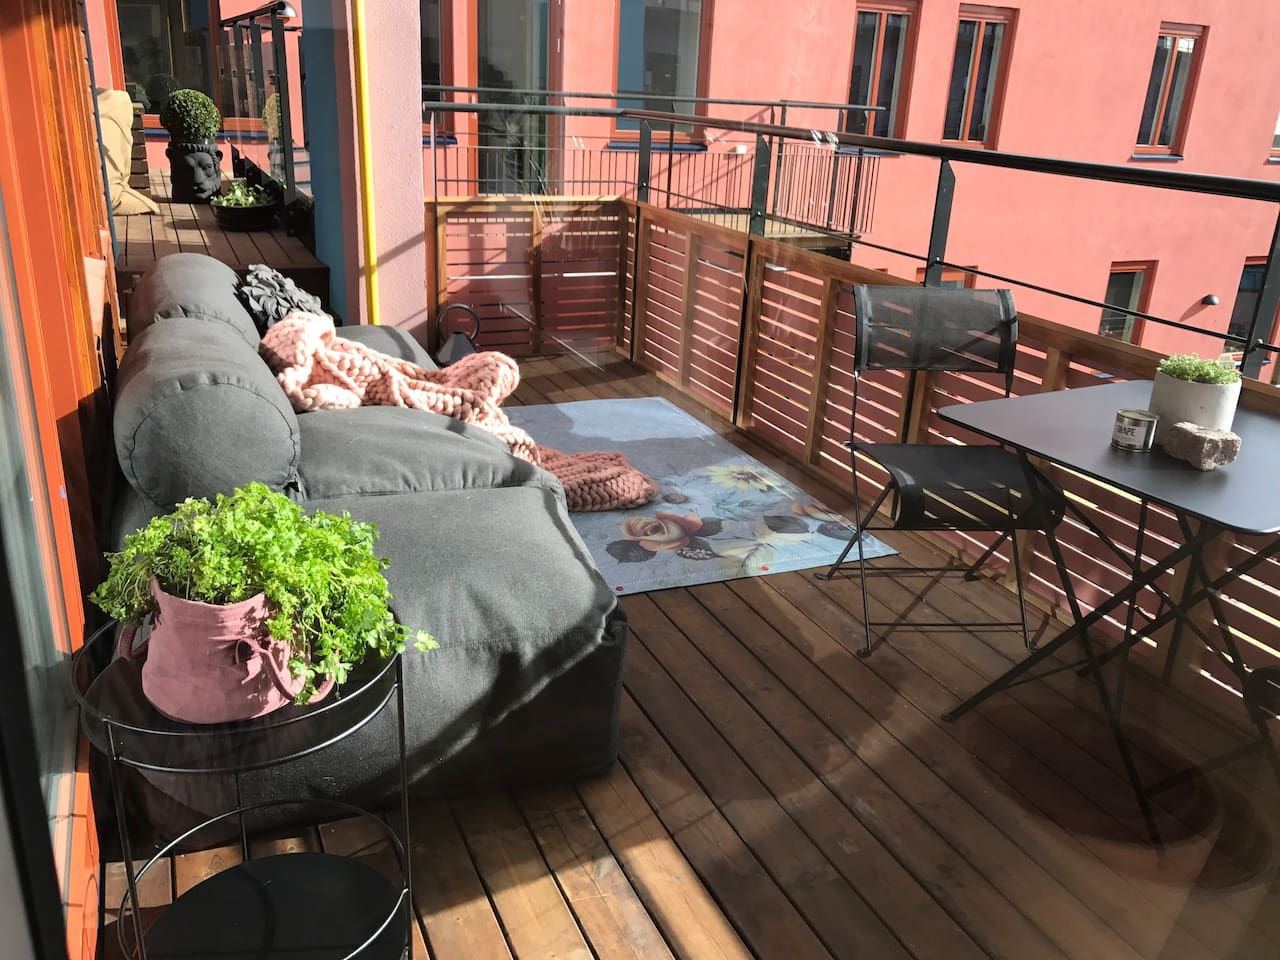 Chill on the balcony